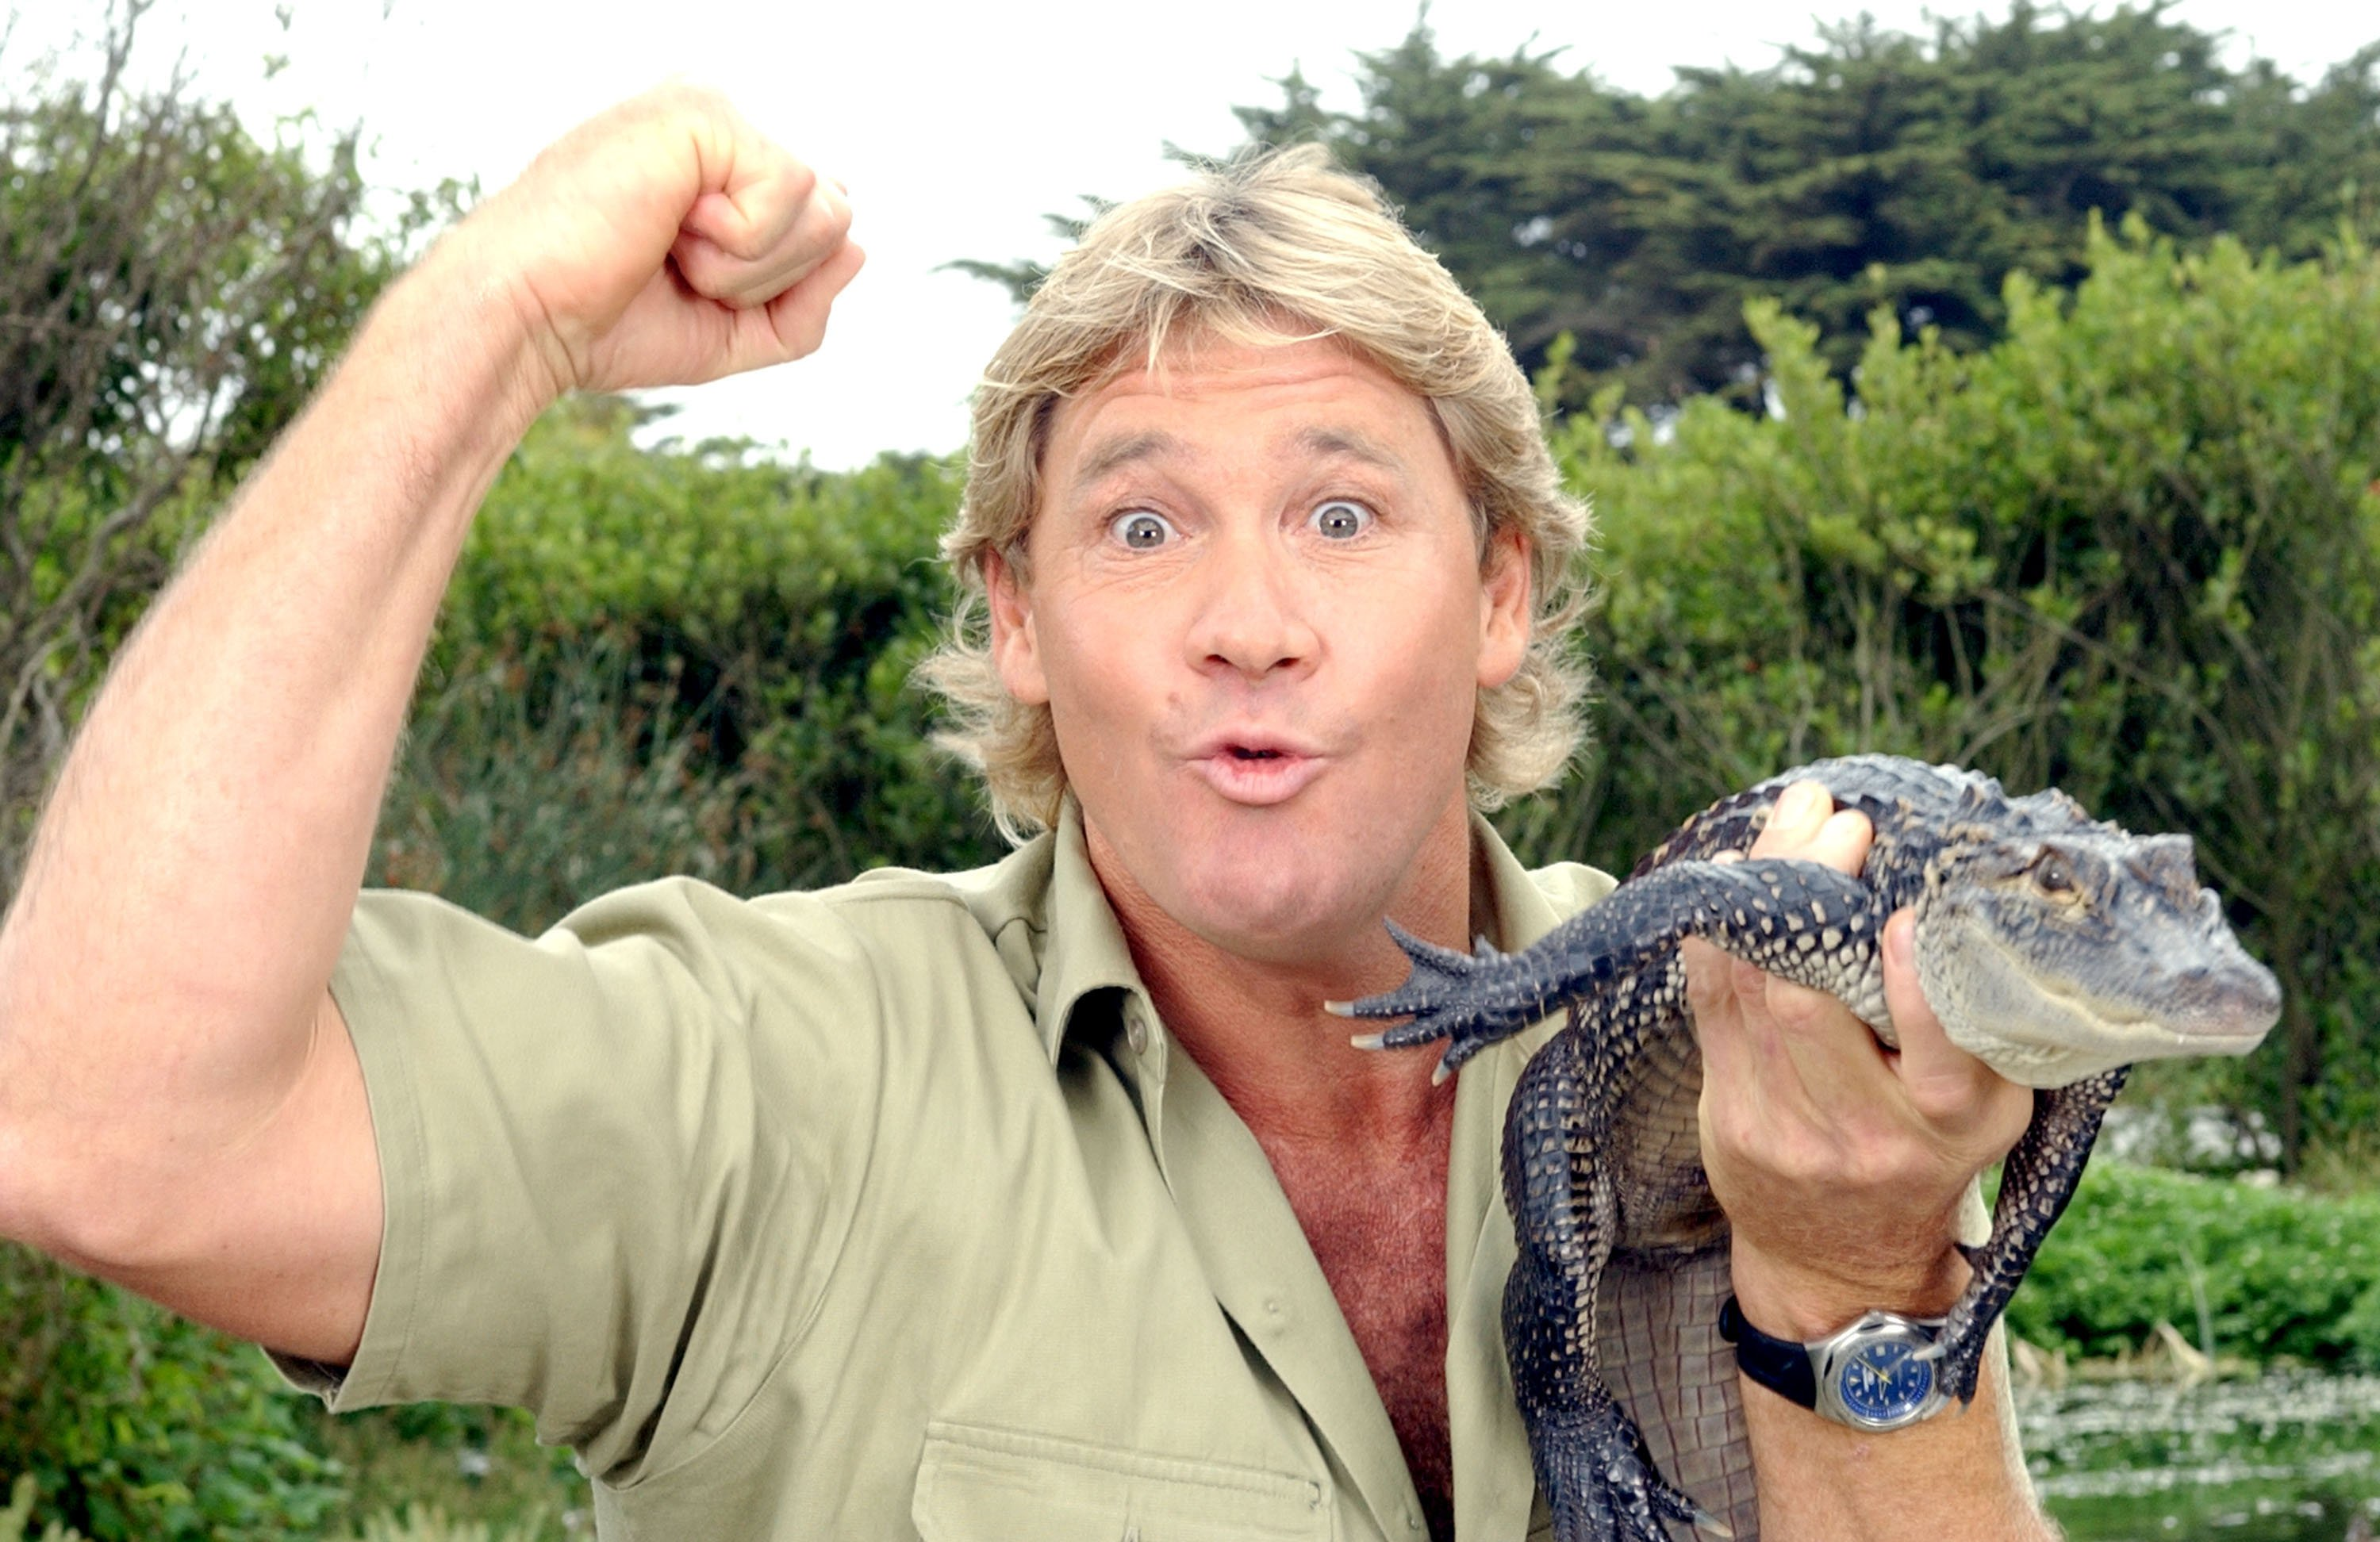 """The Crocodile Hunter"""", Steve Irwin, poses with a three foot long alligator at the San Francisco Zoo . Photos: Getty Images"""